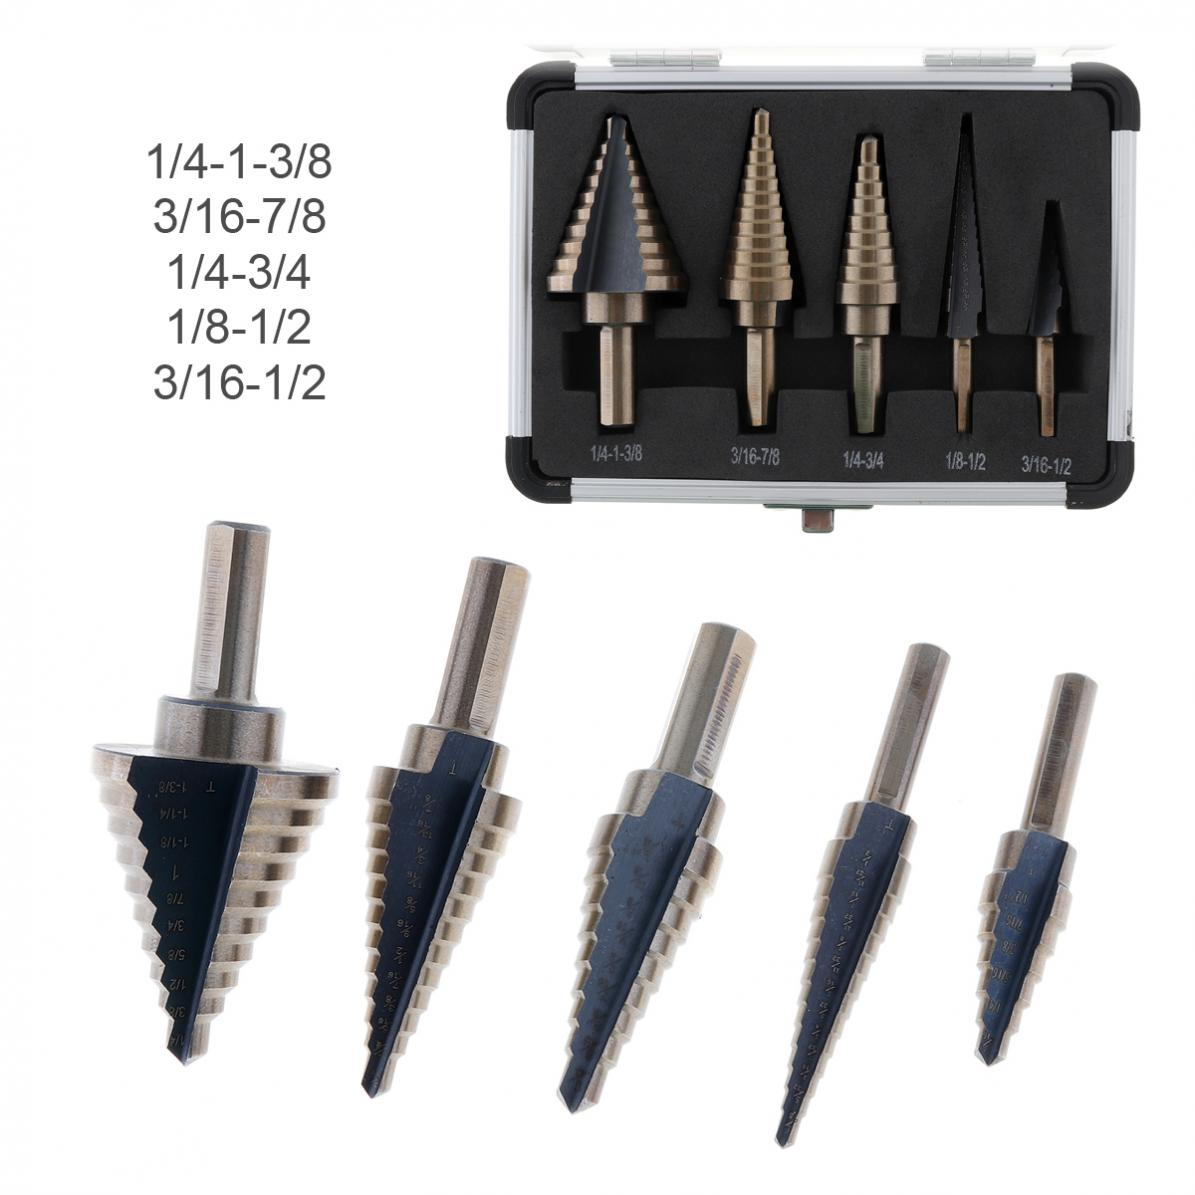 5pcs HSS Steel Step Drill Bit Set Cone Spiral Grooved Drill Bits Multiple Hole of 1/4-1-3/8 3/16-7/8 1/4-3/4 1/8-1/2 3/16-1/2 шорты плавательные i love to dream шорты плавательные